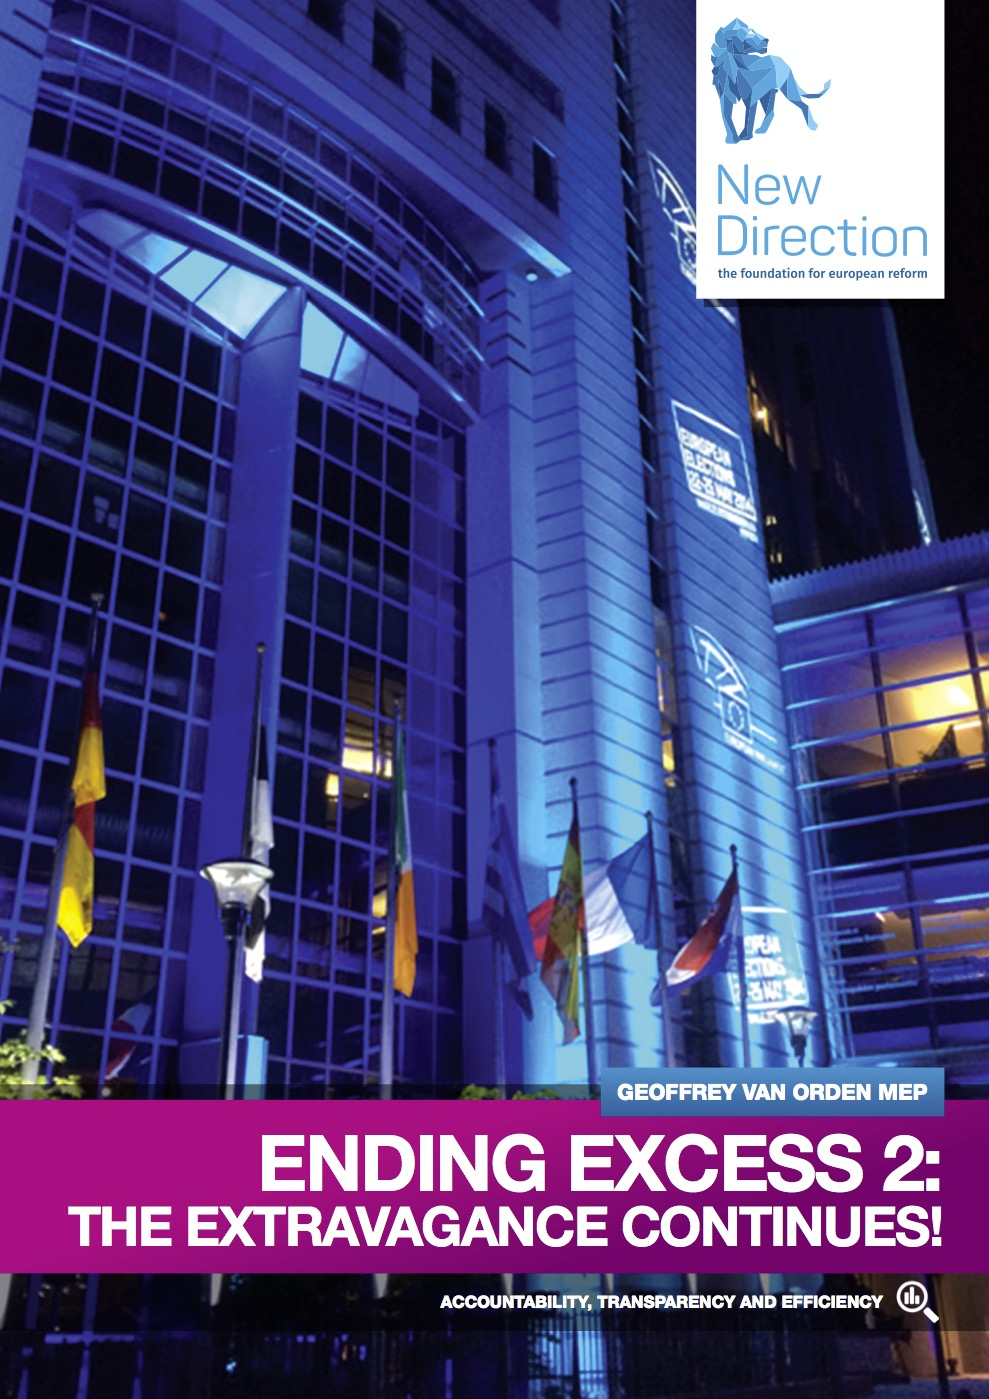 Ending Excess 2: The Extravagance Continues!